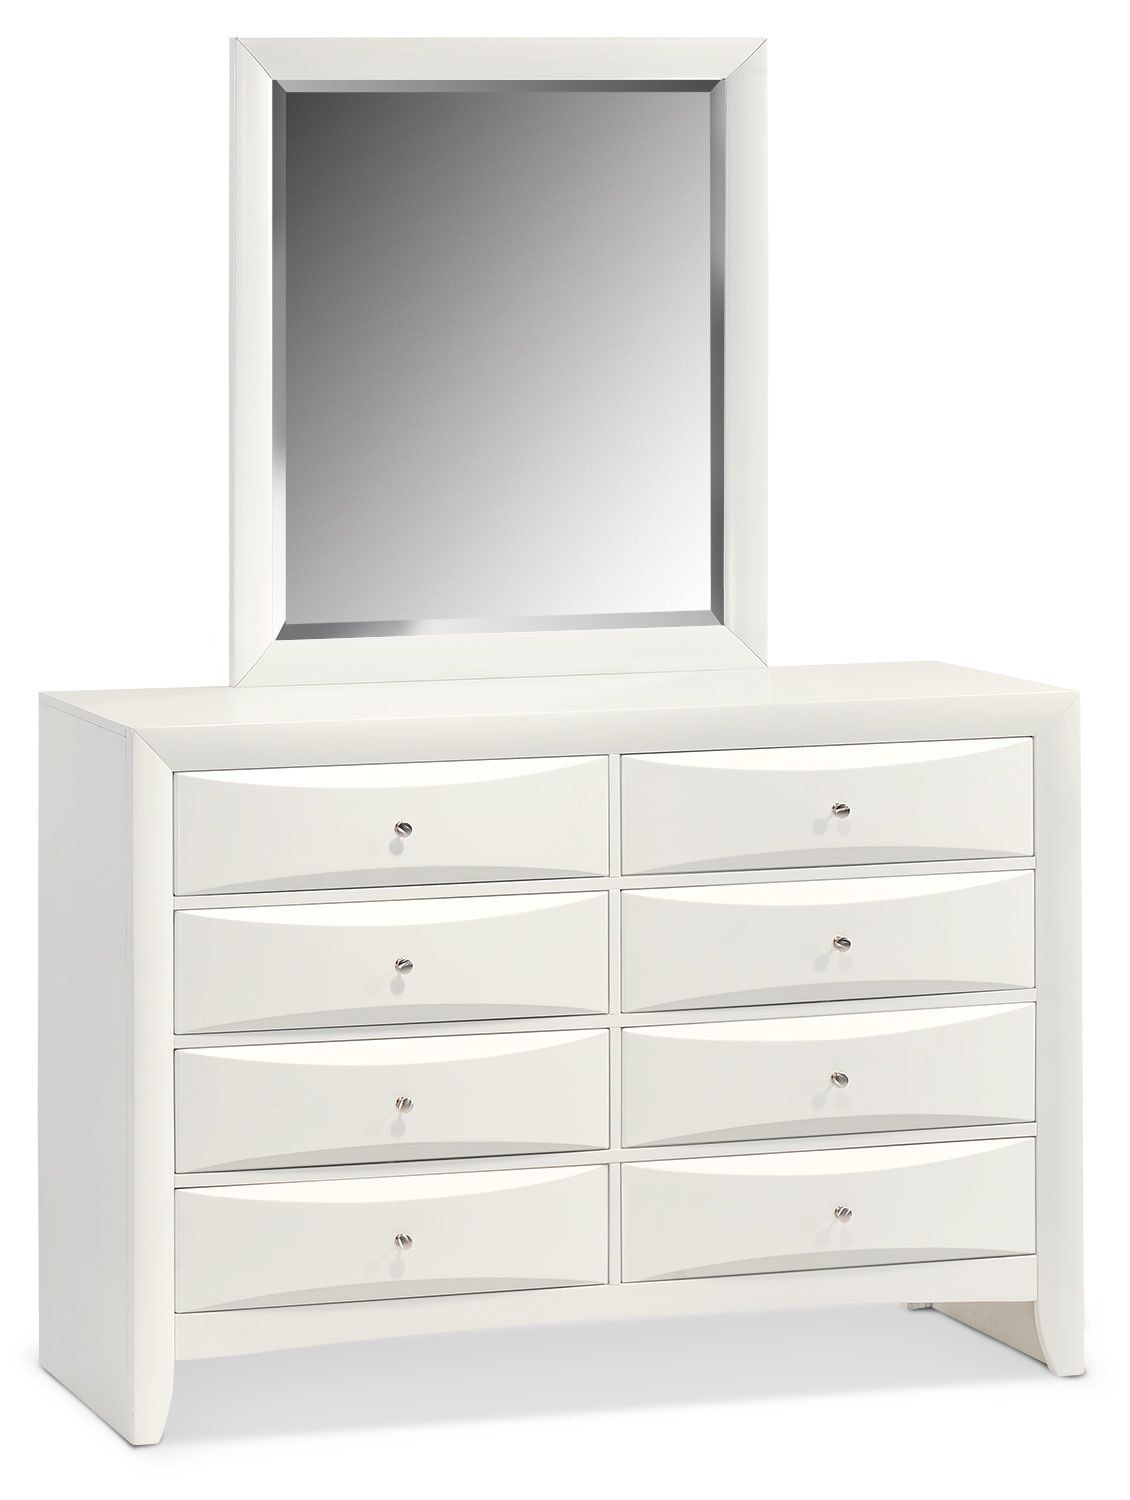 Braden List Dresser And Wish DresserBedroom MirrorDecorhome ED2Y9IWH